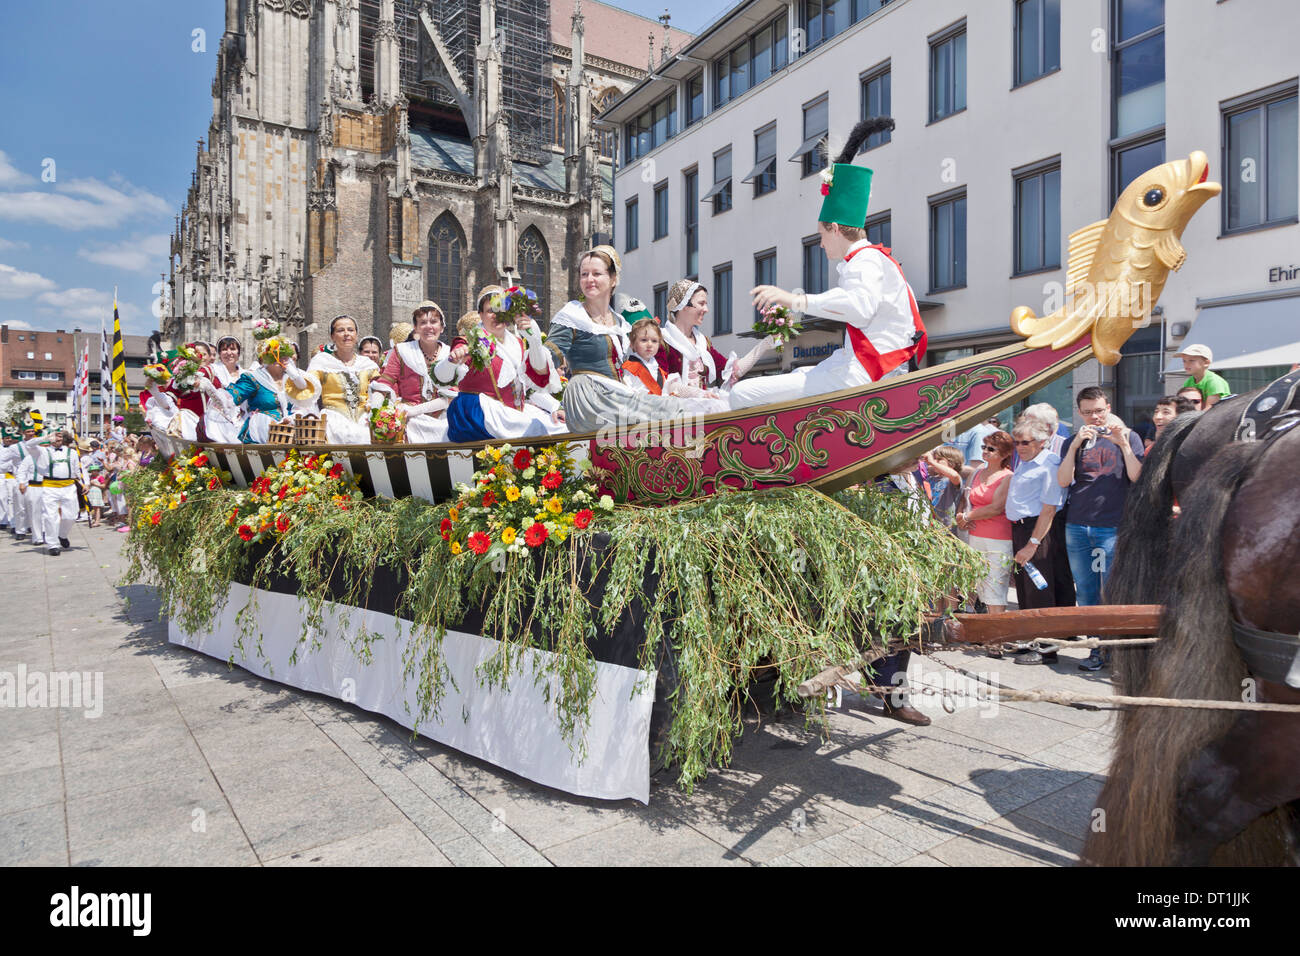 Fisher women on a boat in costumes at the Munsterplatz square, Fischerstechen, Ulm, Baden Wurttemberg, Germany - Stock Image